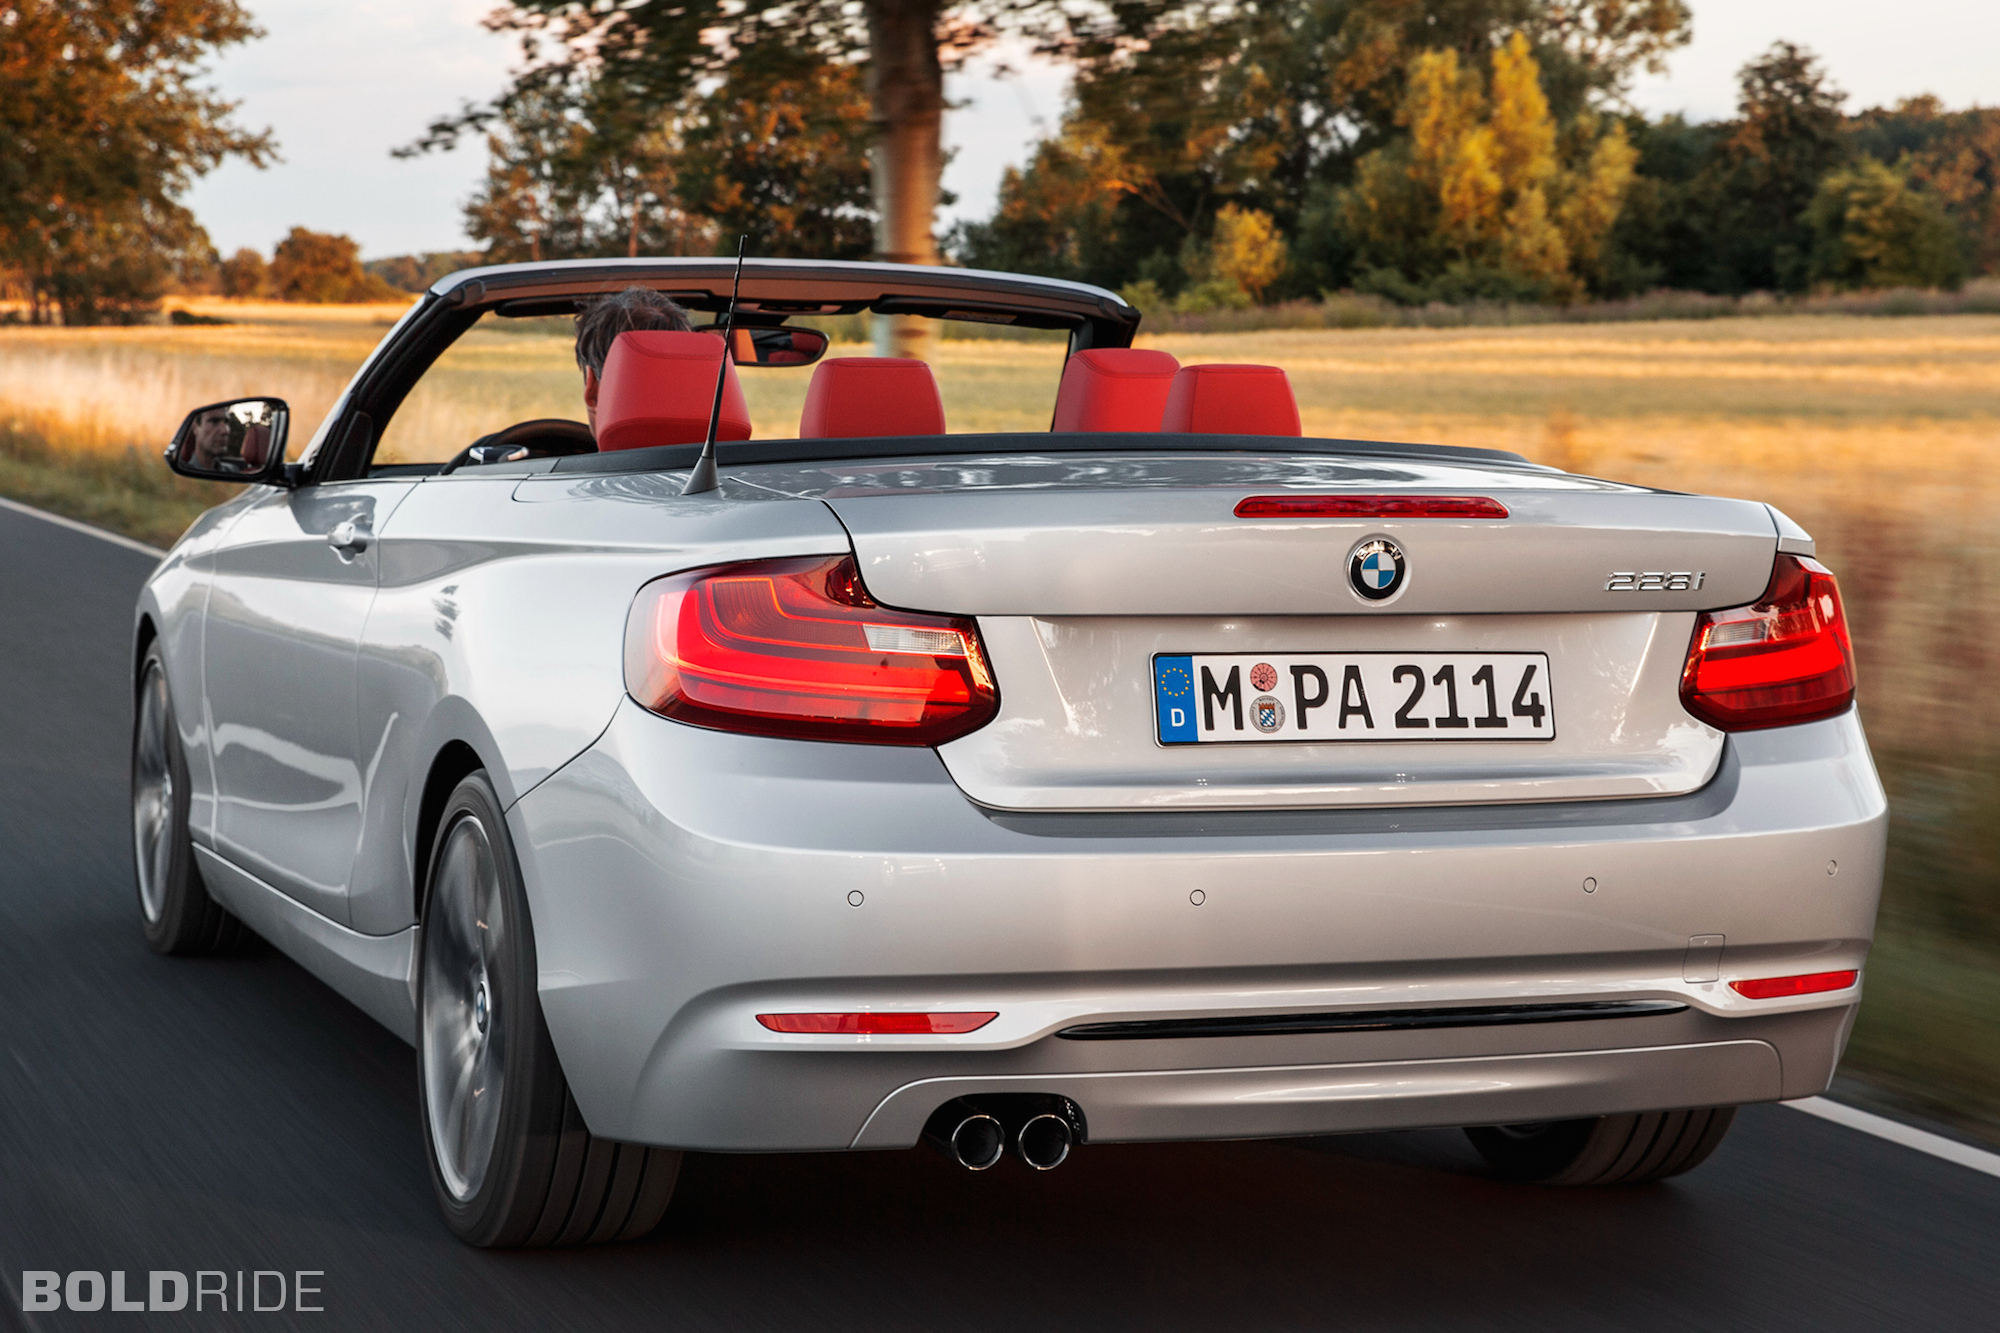 2015 BMW 2 Series Convertible 1920 x 1080